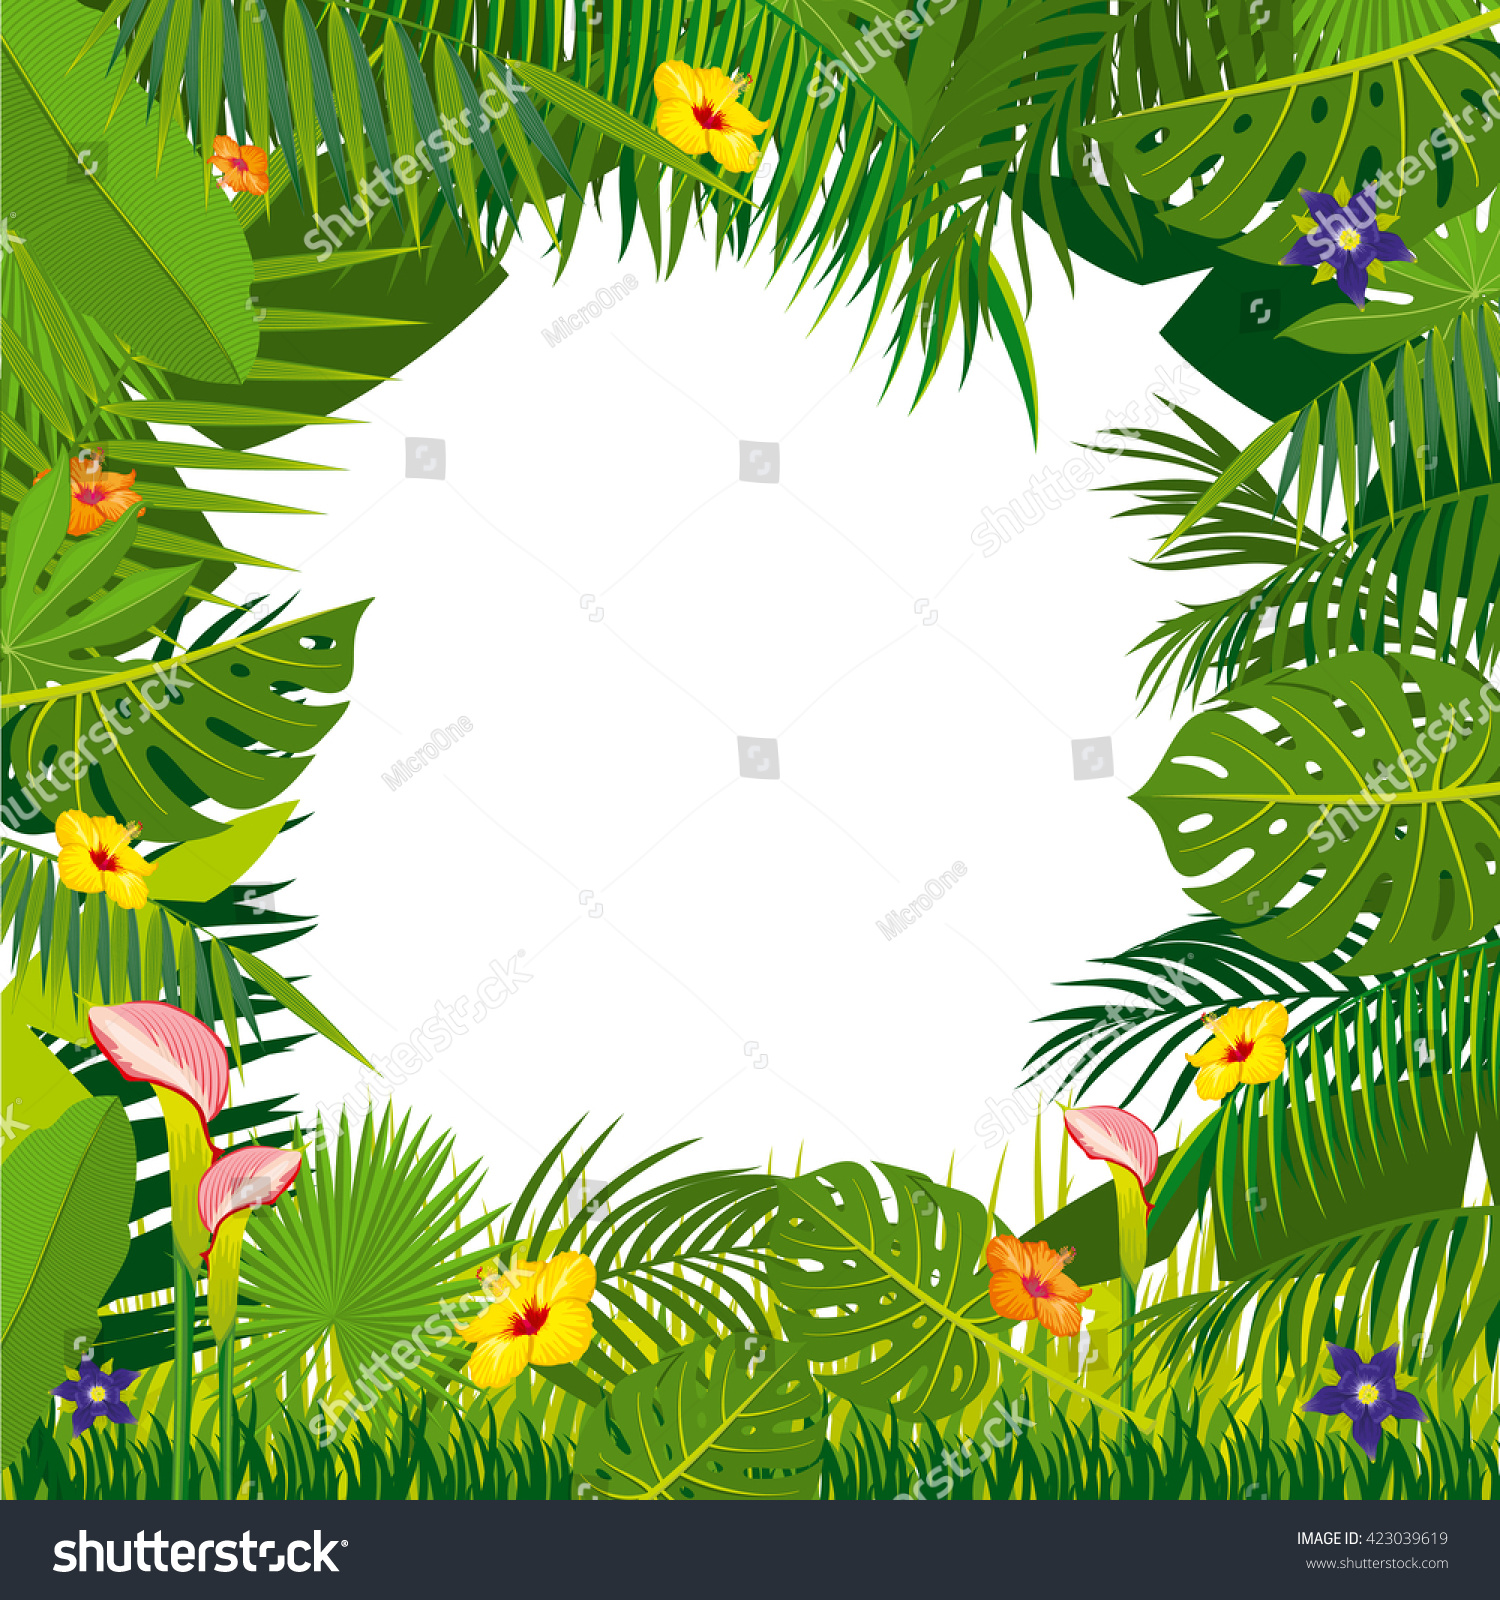 Jungle Vines Vector | www.pixshark.com - Images Galleries ...